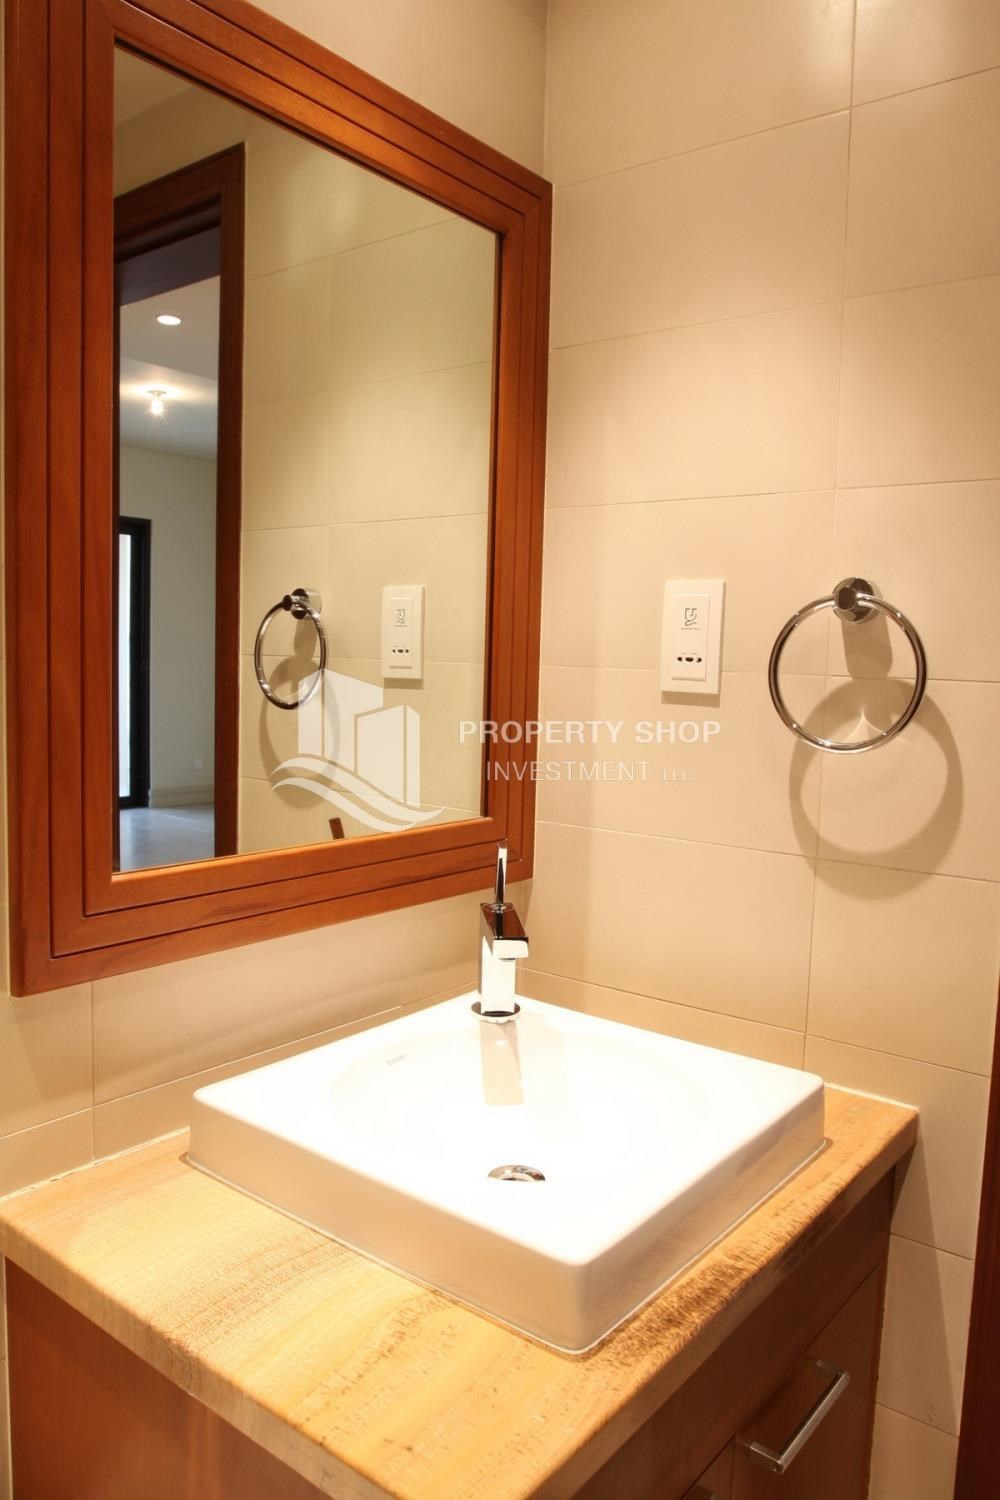 Bathroom - Well Maintained 1BR Apt in Saadiyat Beach Residences Available for rent!